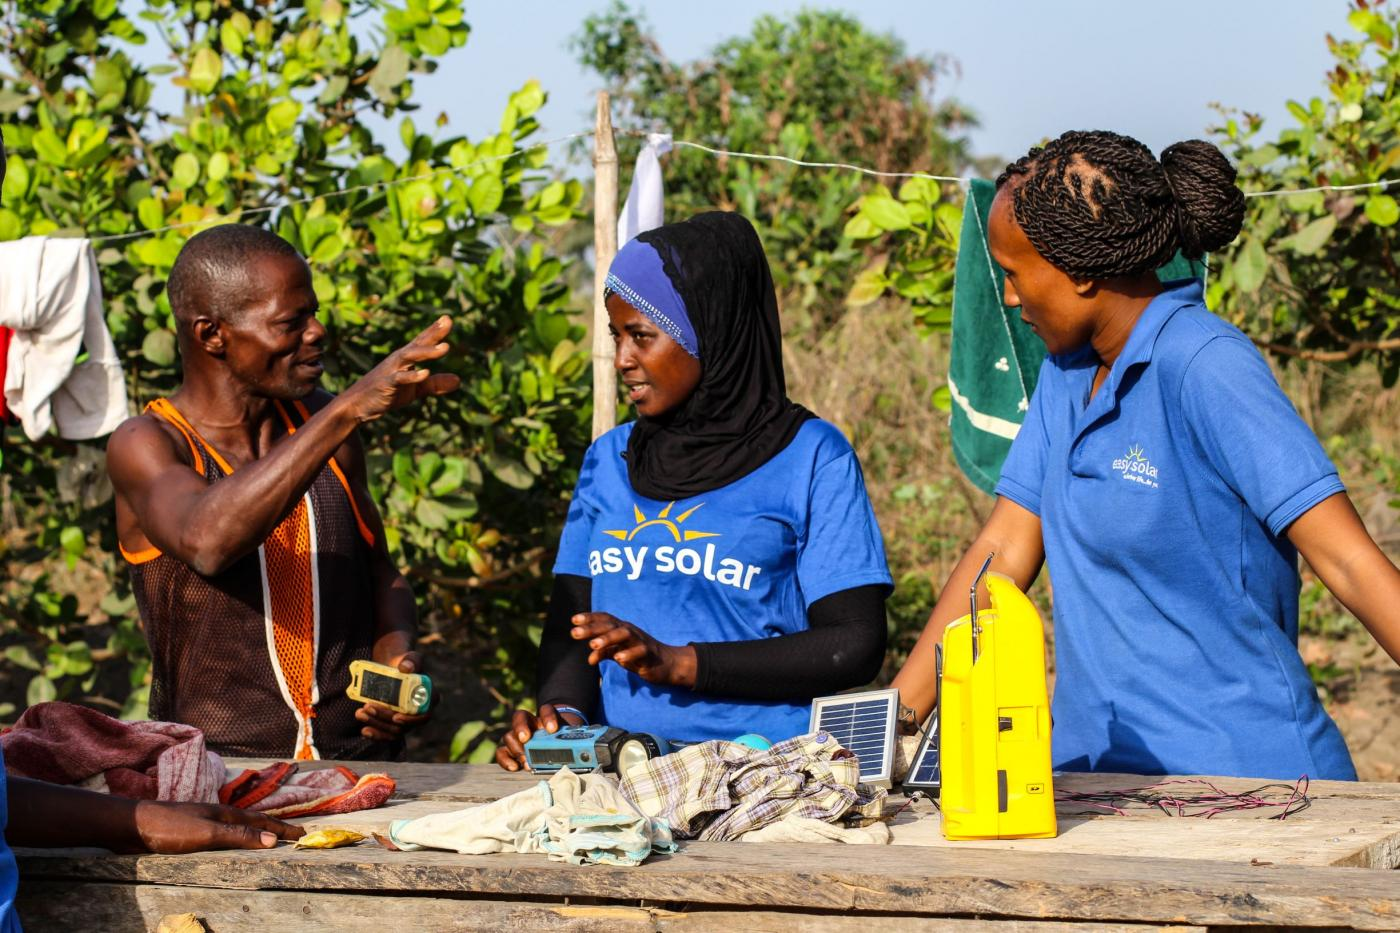 two women and a man with an off-grid solar panel